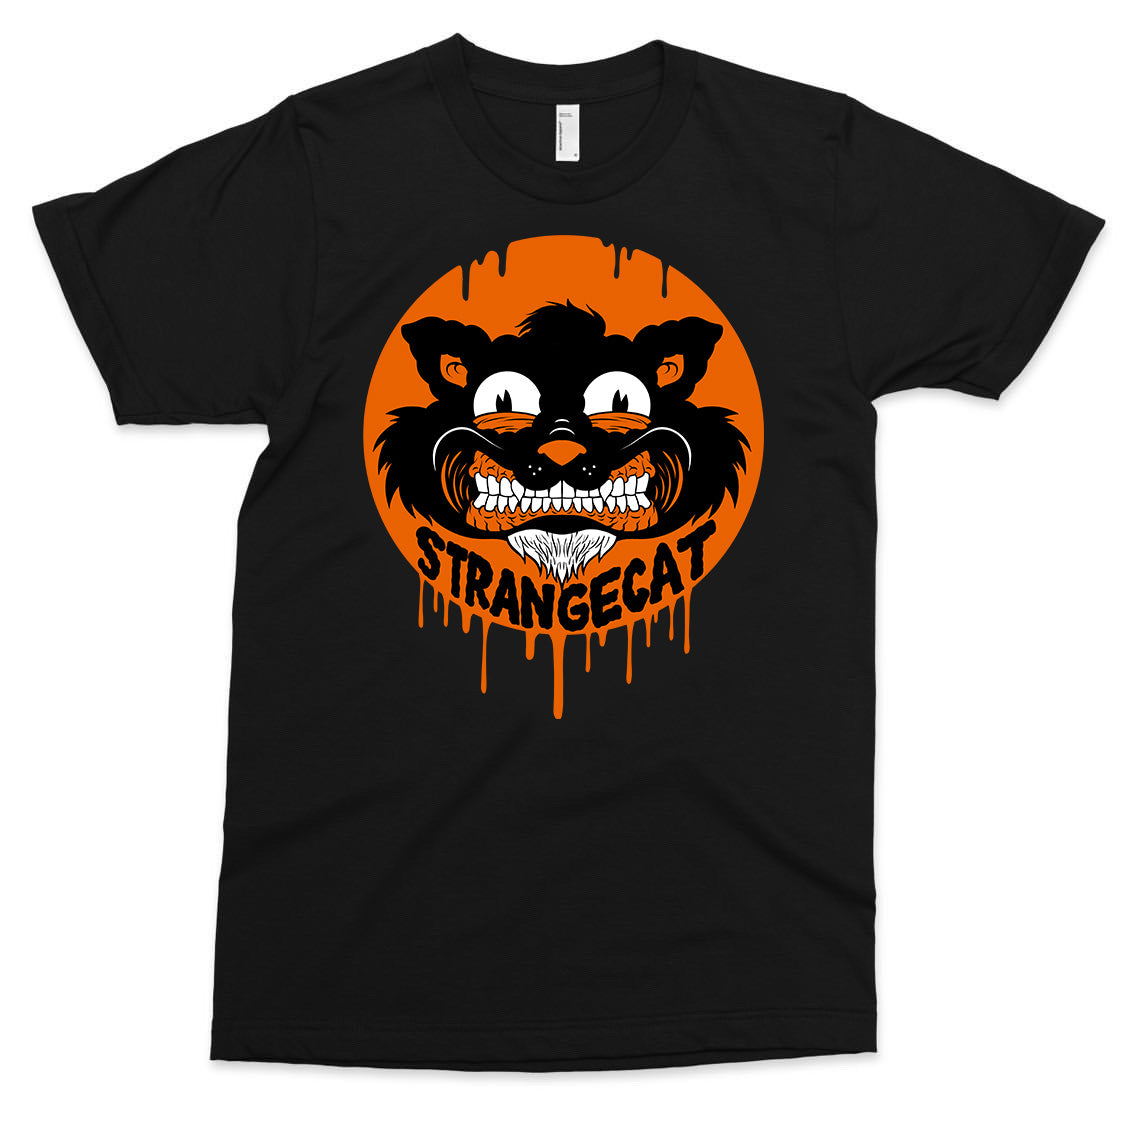 Strangecat Spooky Shirt by Alex Pardee